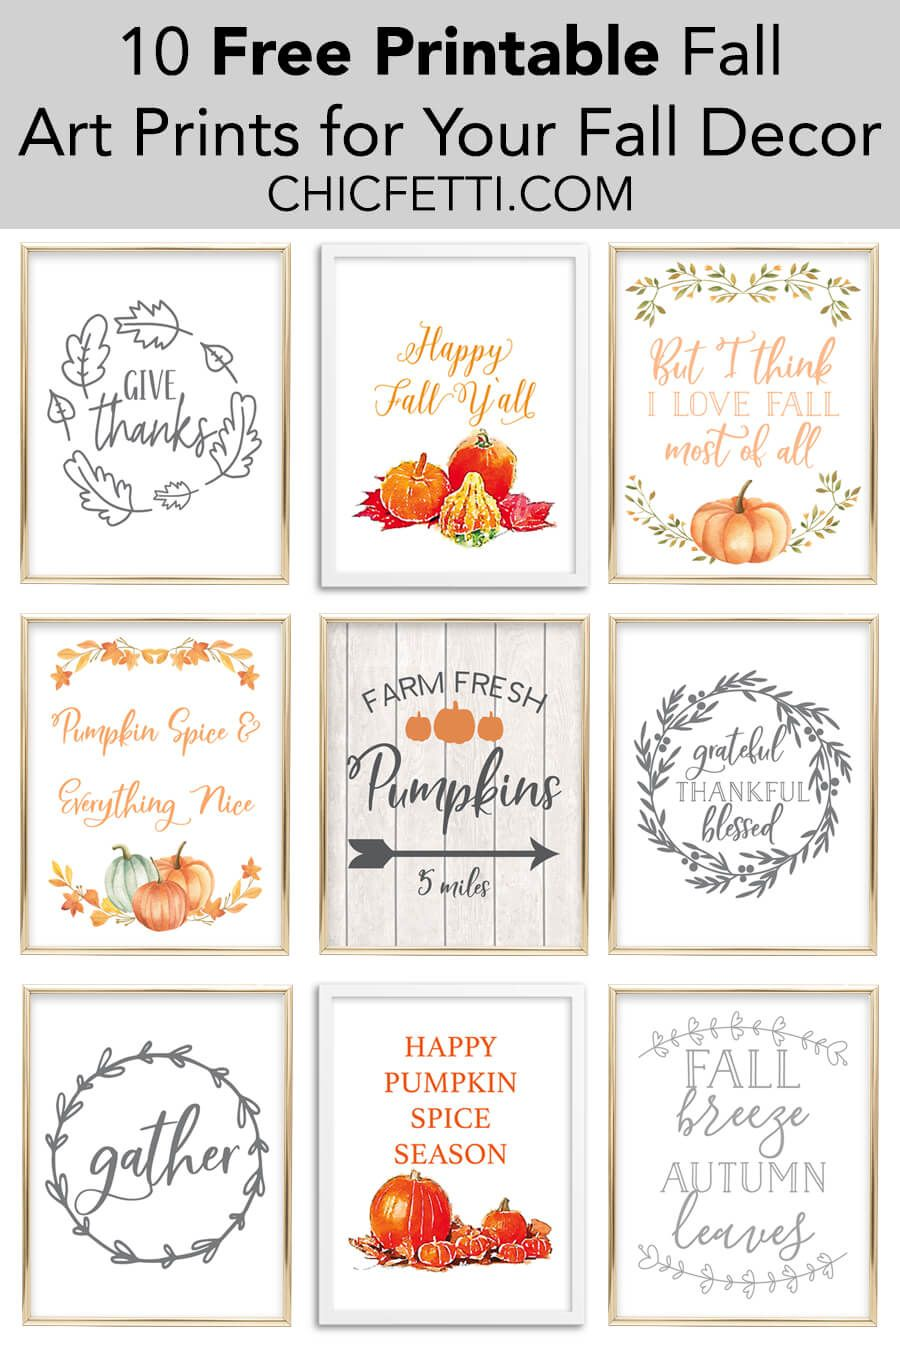 10 Free Printable Fall Art Prints for Your Fall Decor